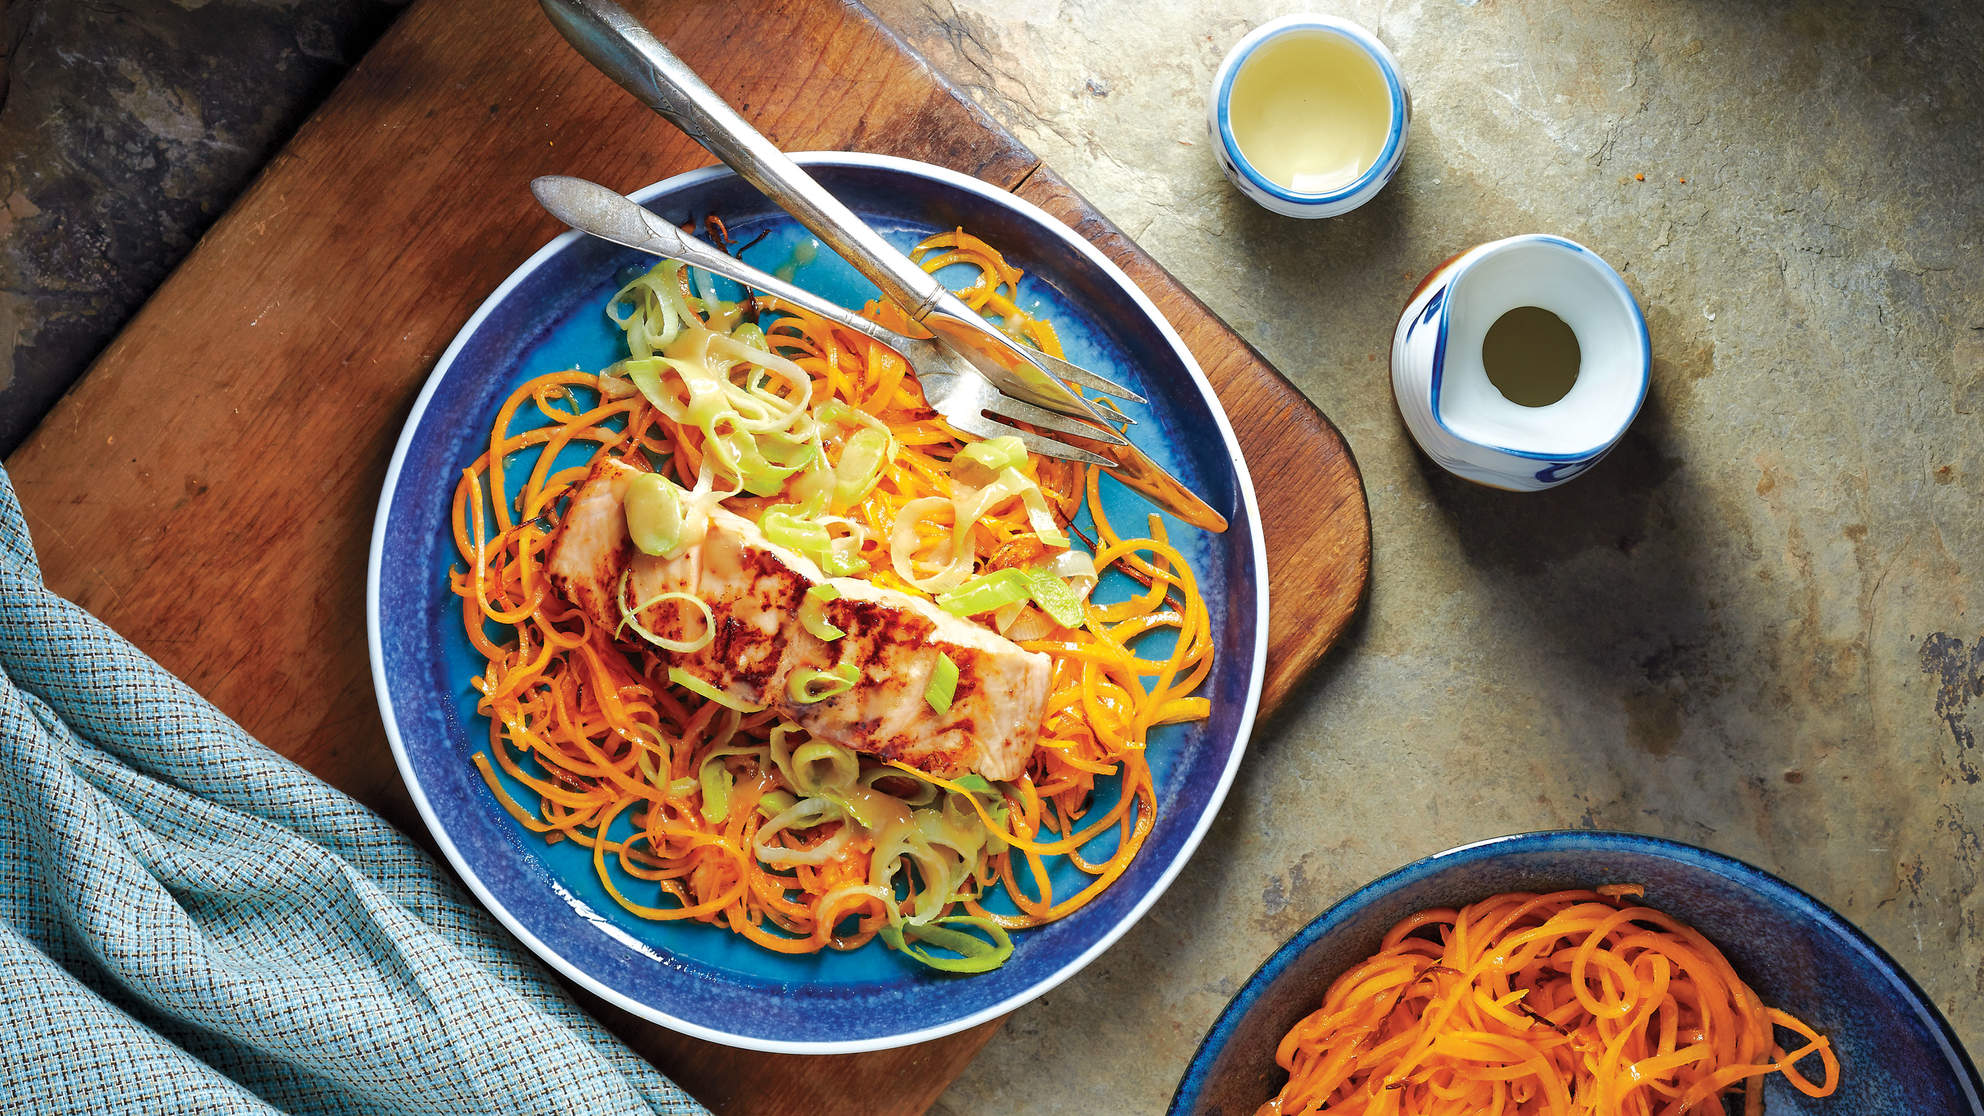 winter-squash-noodles-miso-glazed-salmon-noodles-made-healthy